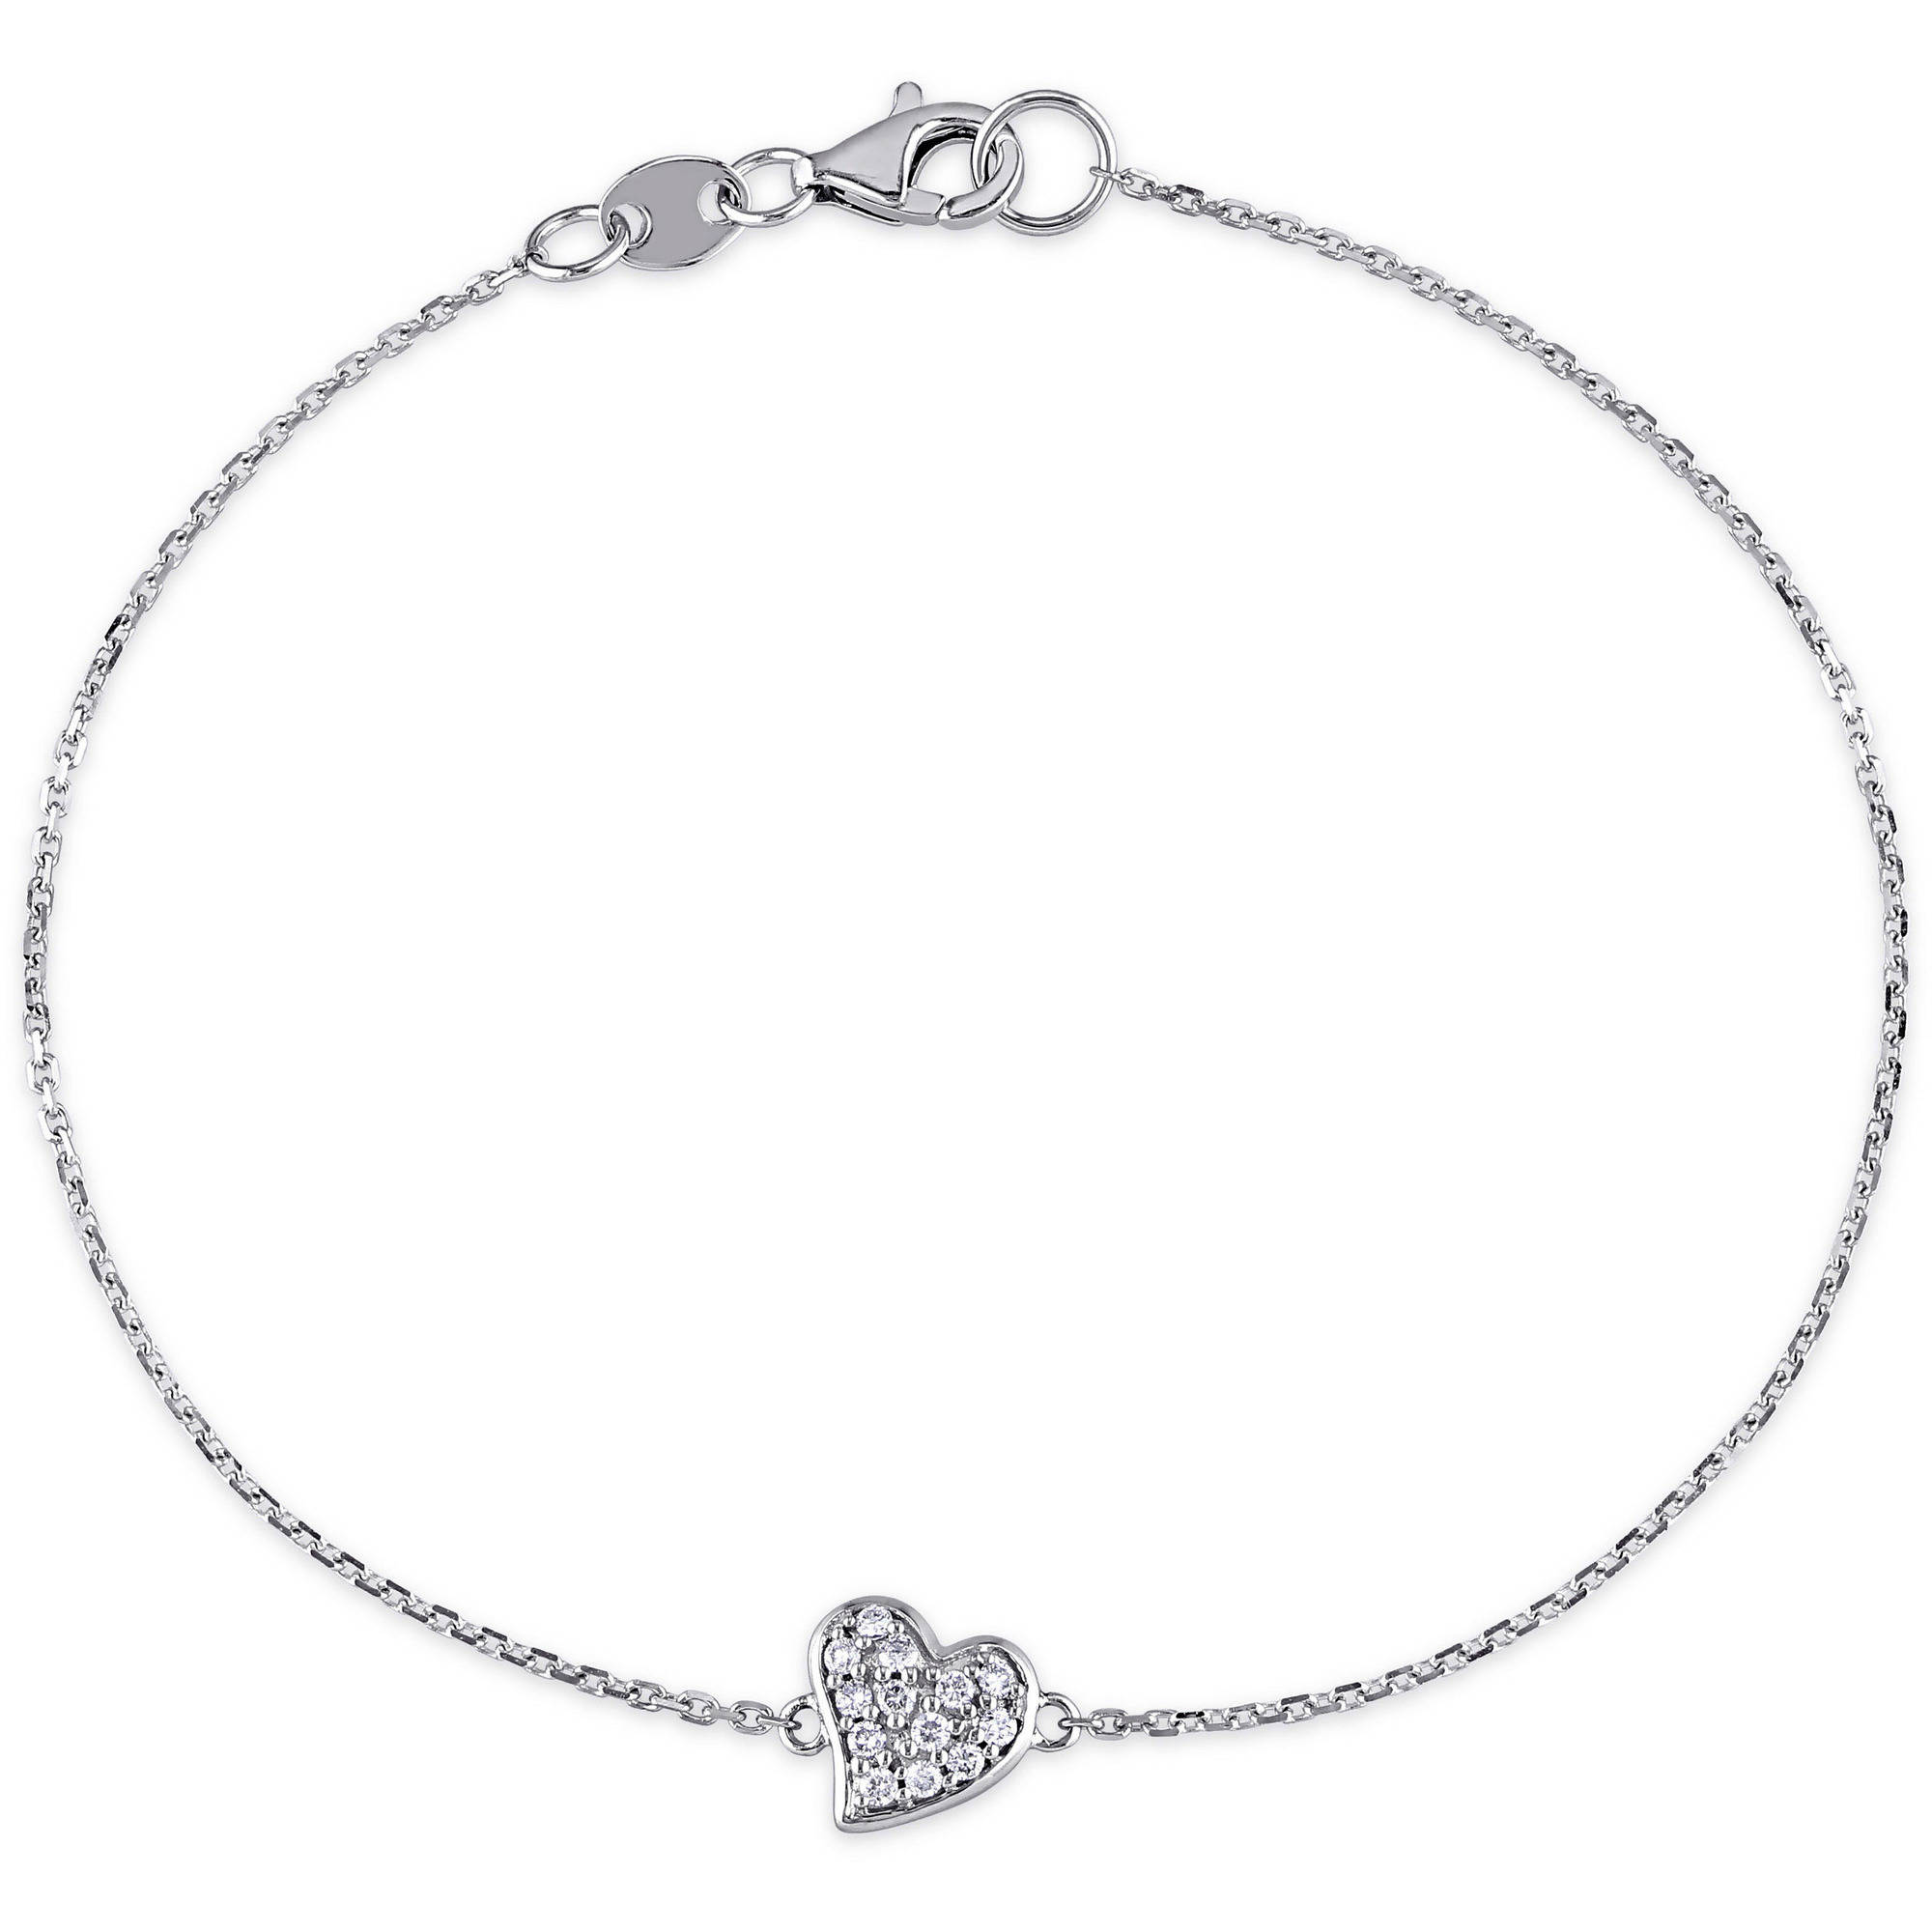 "Miabella 1 10 Carat T.W. Diamond 14kt White Gold Heart Bracelet, 7"" by Miabella"